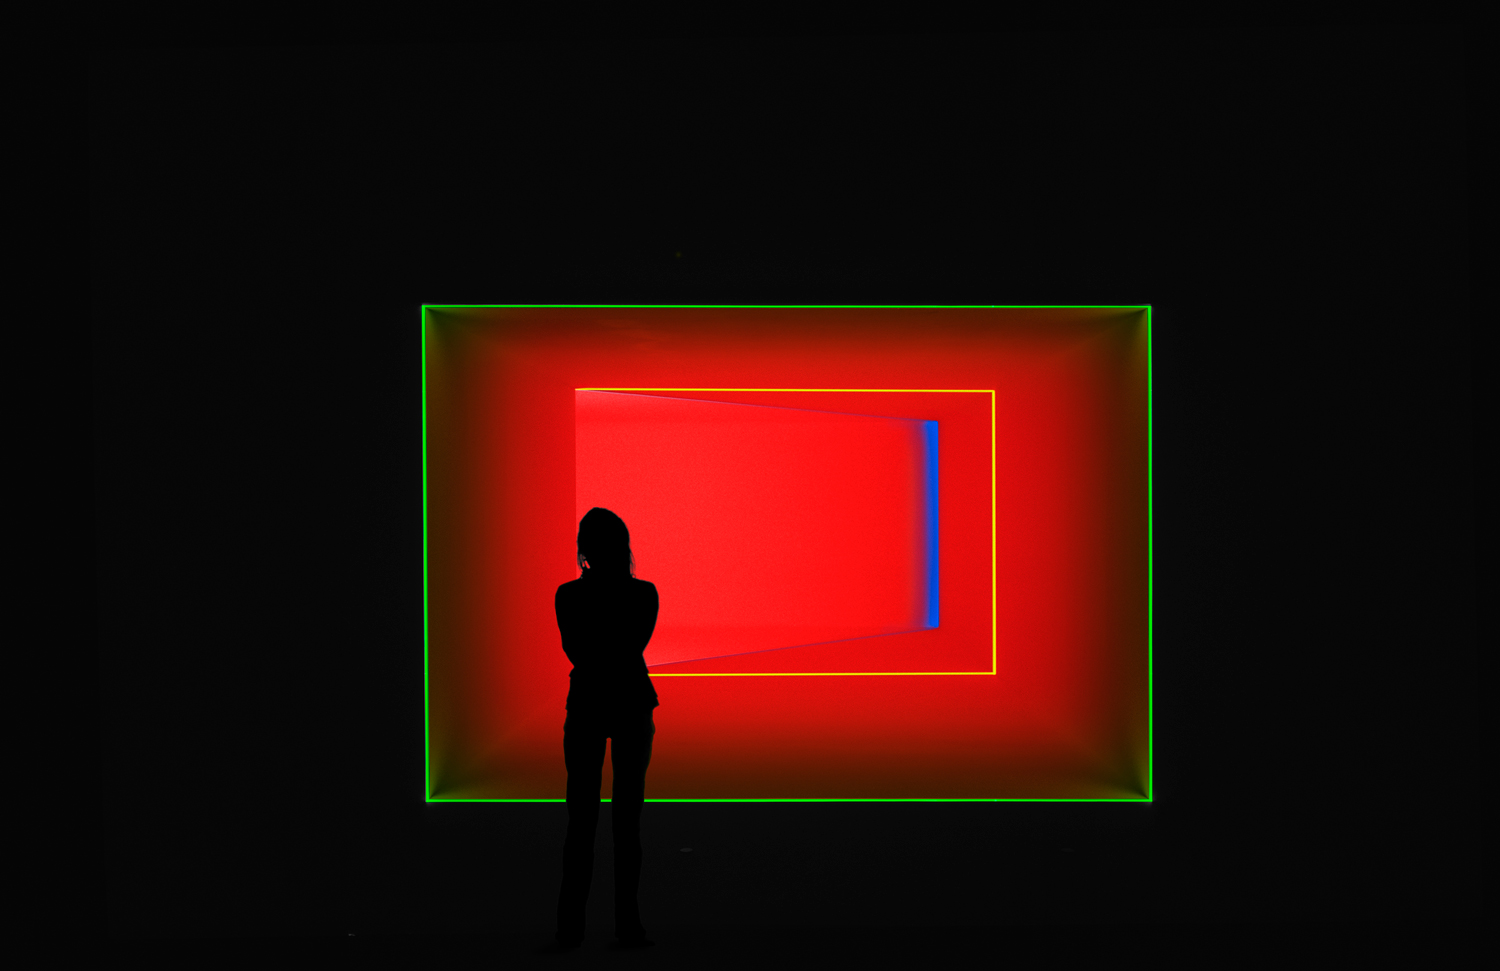 © 2015 James Turrell - photo : Florian Holzherr & E.C. Krupp.